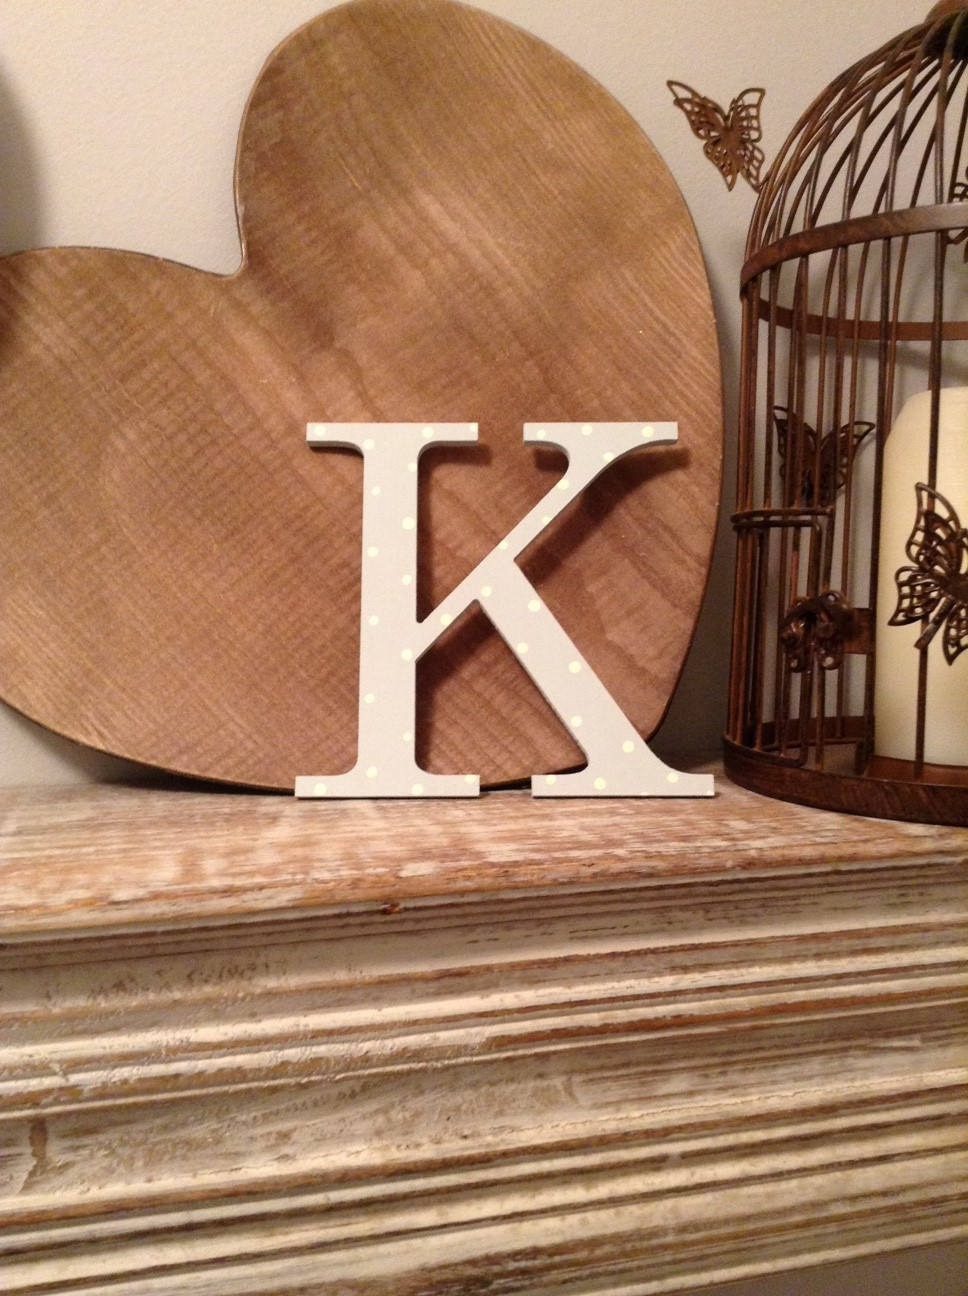 Giant Wooden Letter K Times Roman Font 50cm High 20 Inch Any